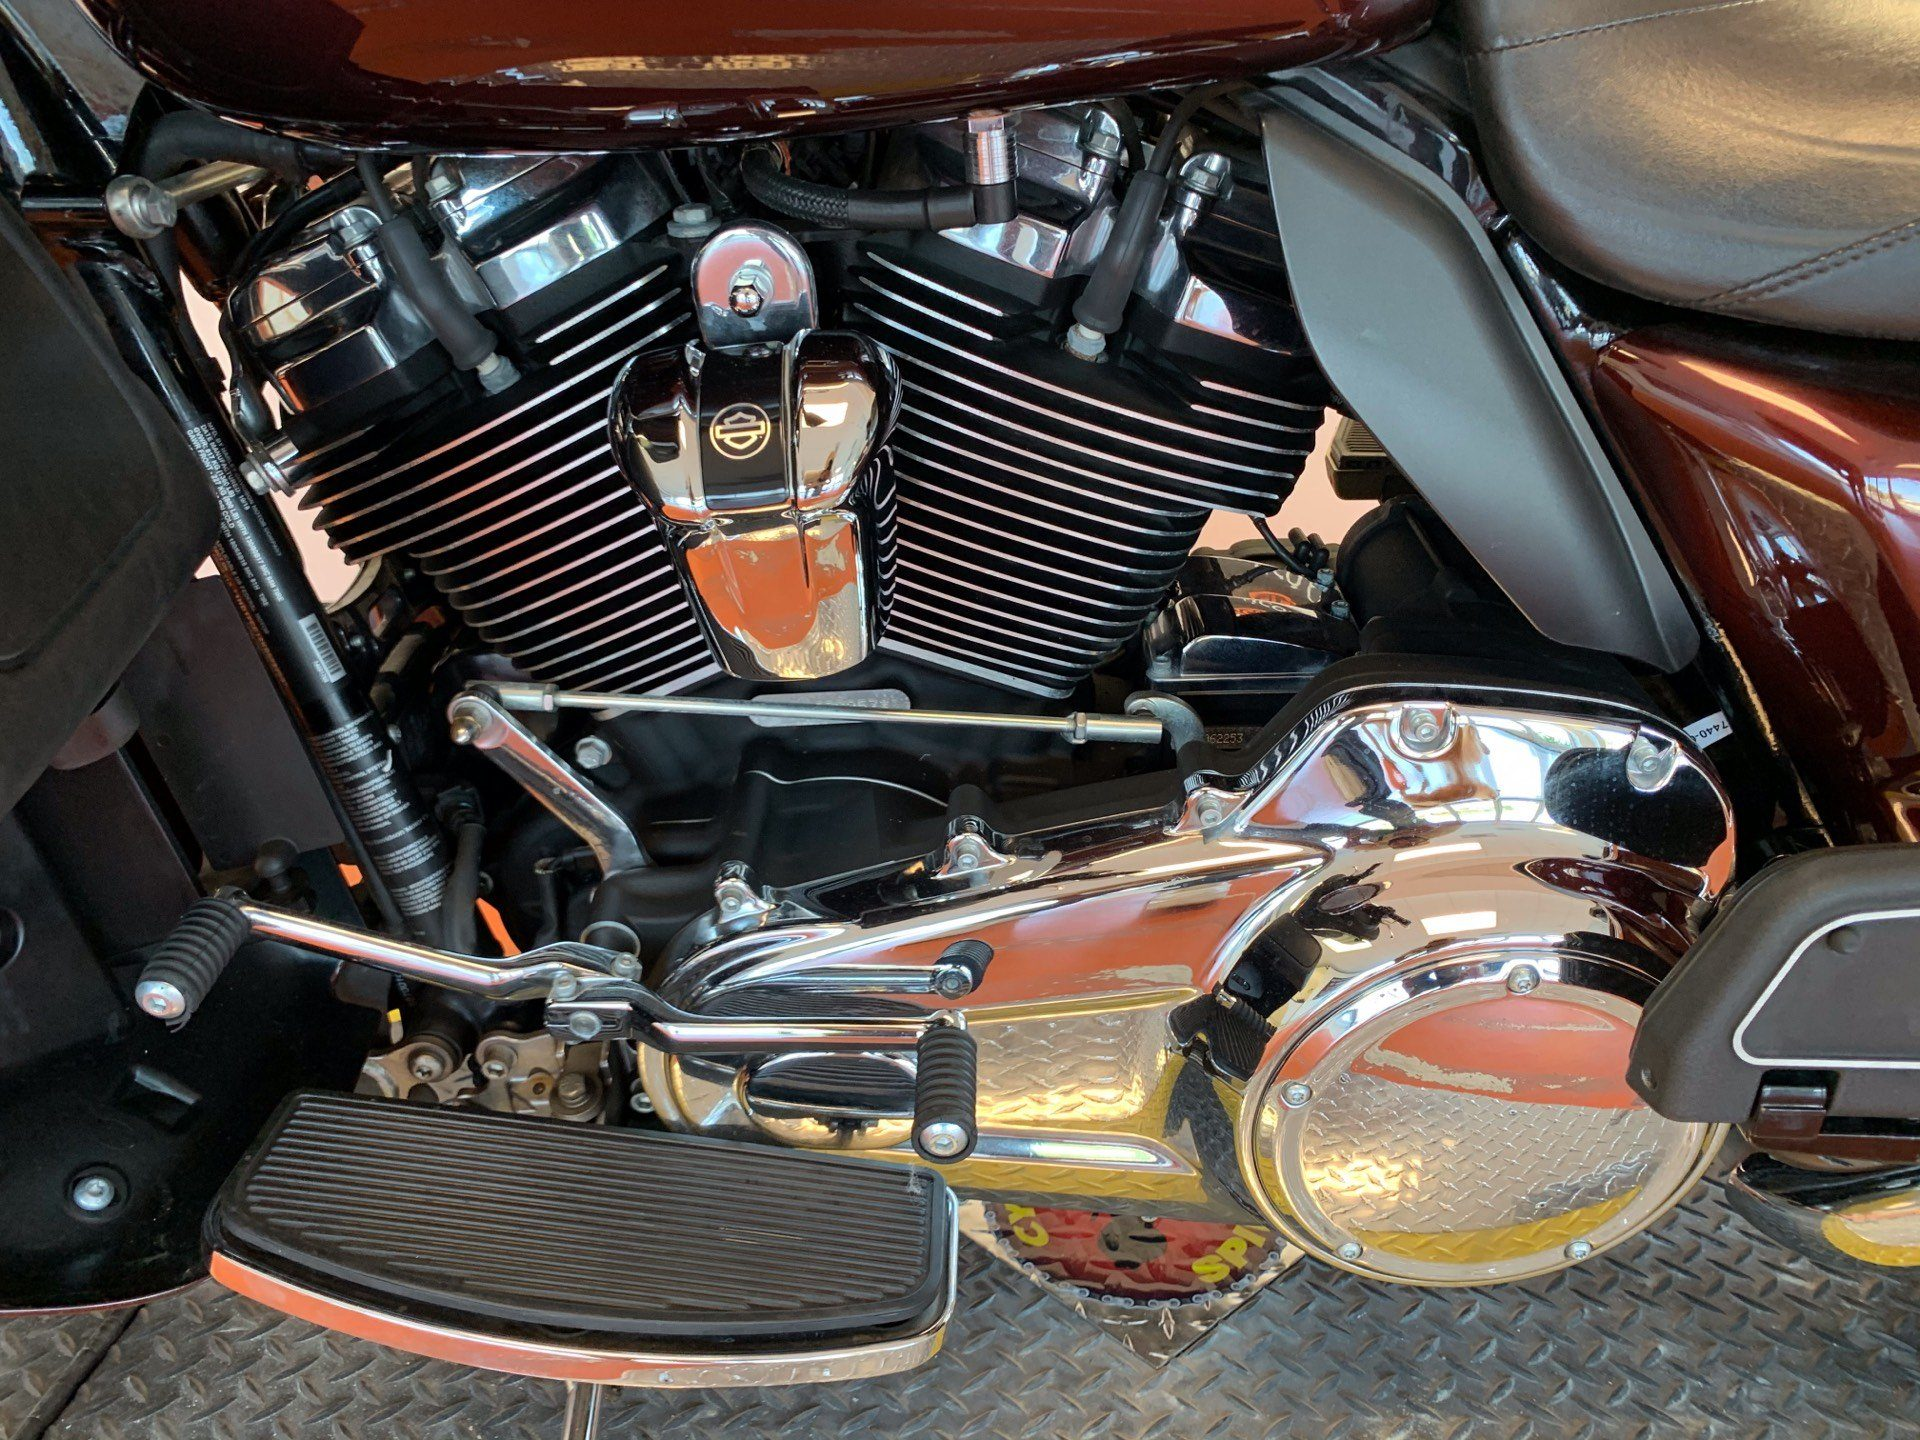 2019 Harley-Davidson Electra Glide® Ultra Classic® in Dumfries, Virginia - Photo 13